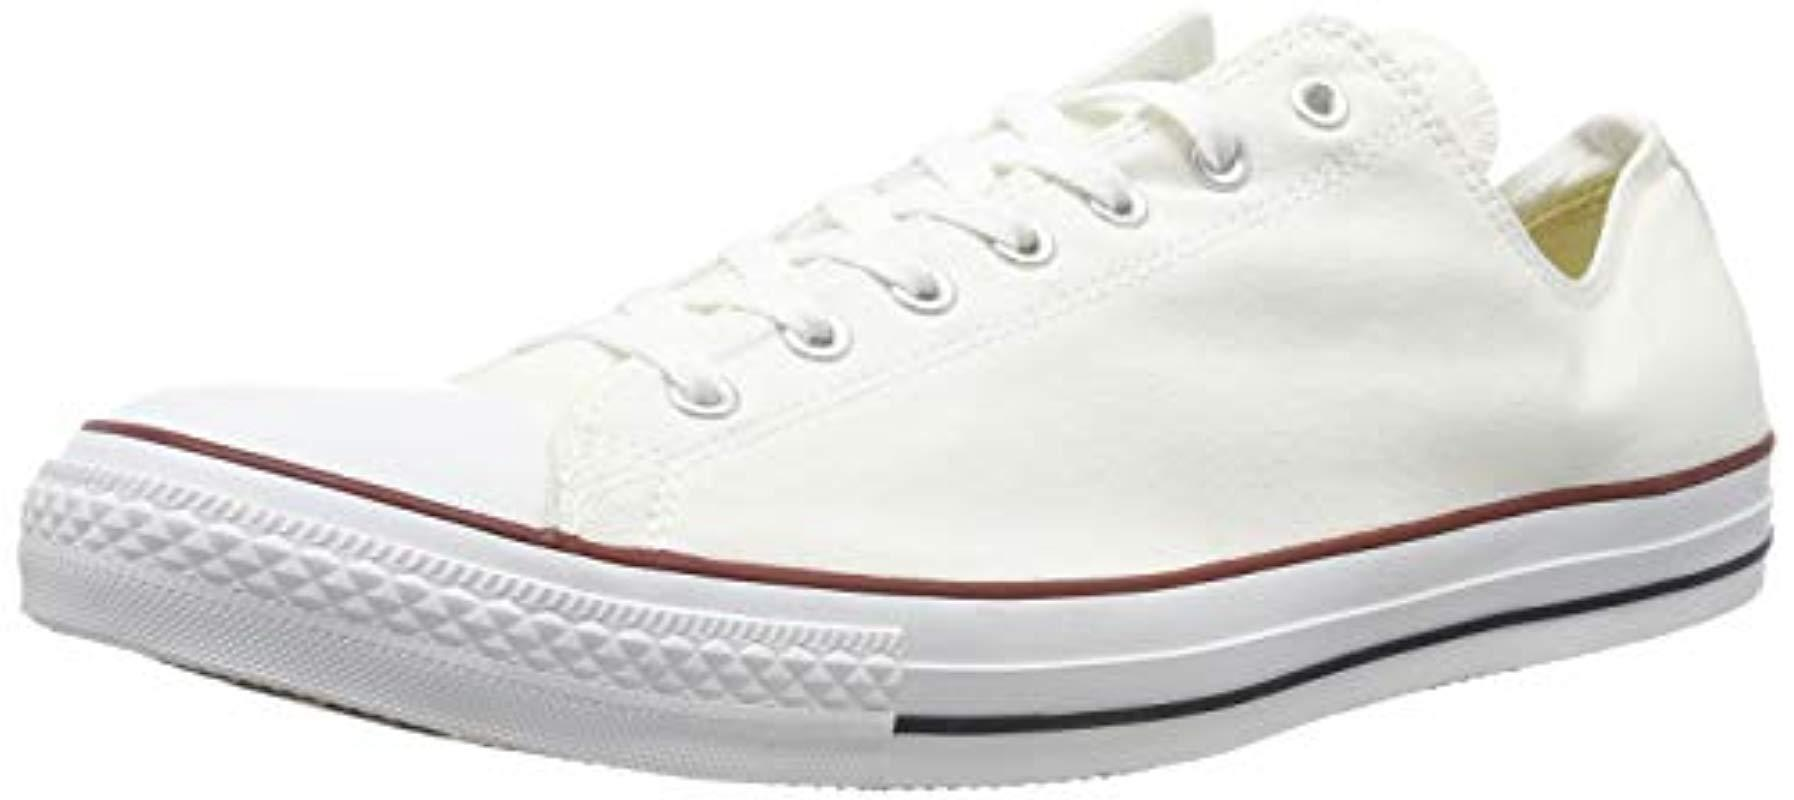 7699c3755246 Converse Chuck Taylor All Star Seasonal Unisex Adult Shoes in White ...